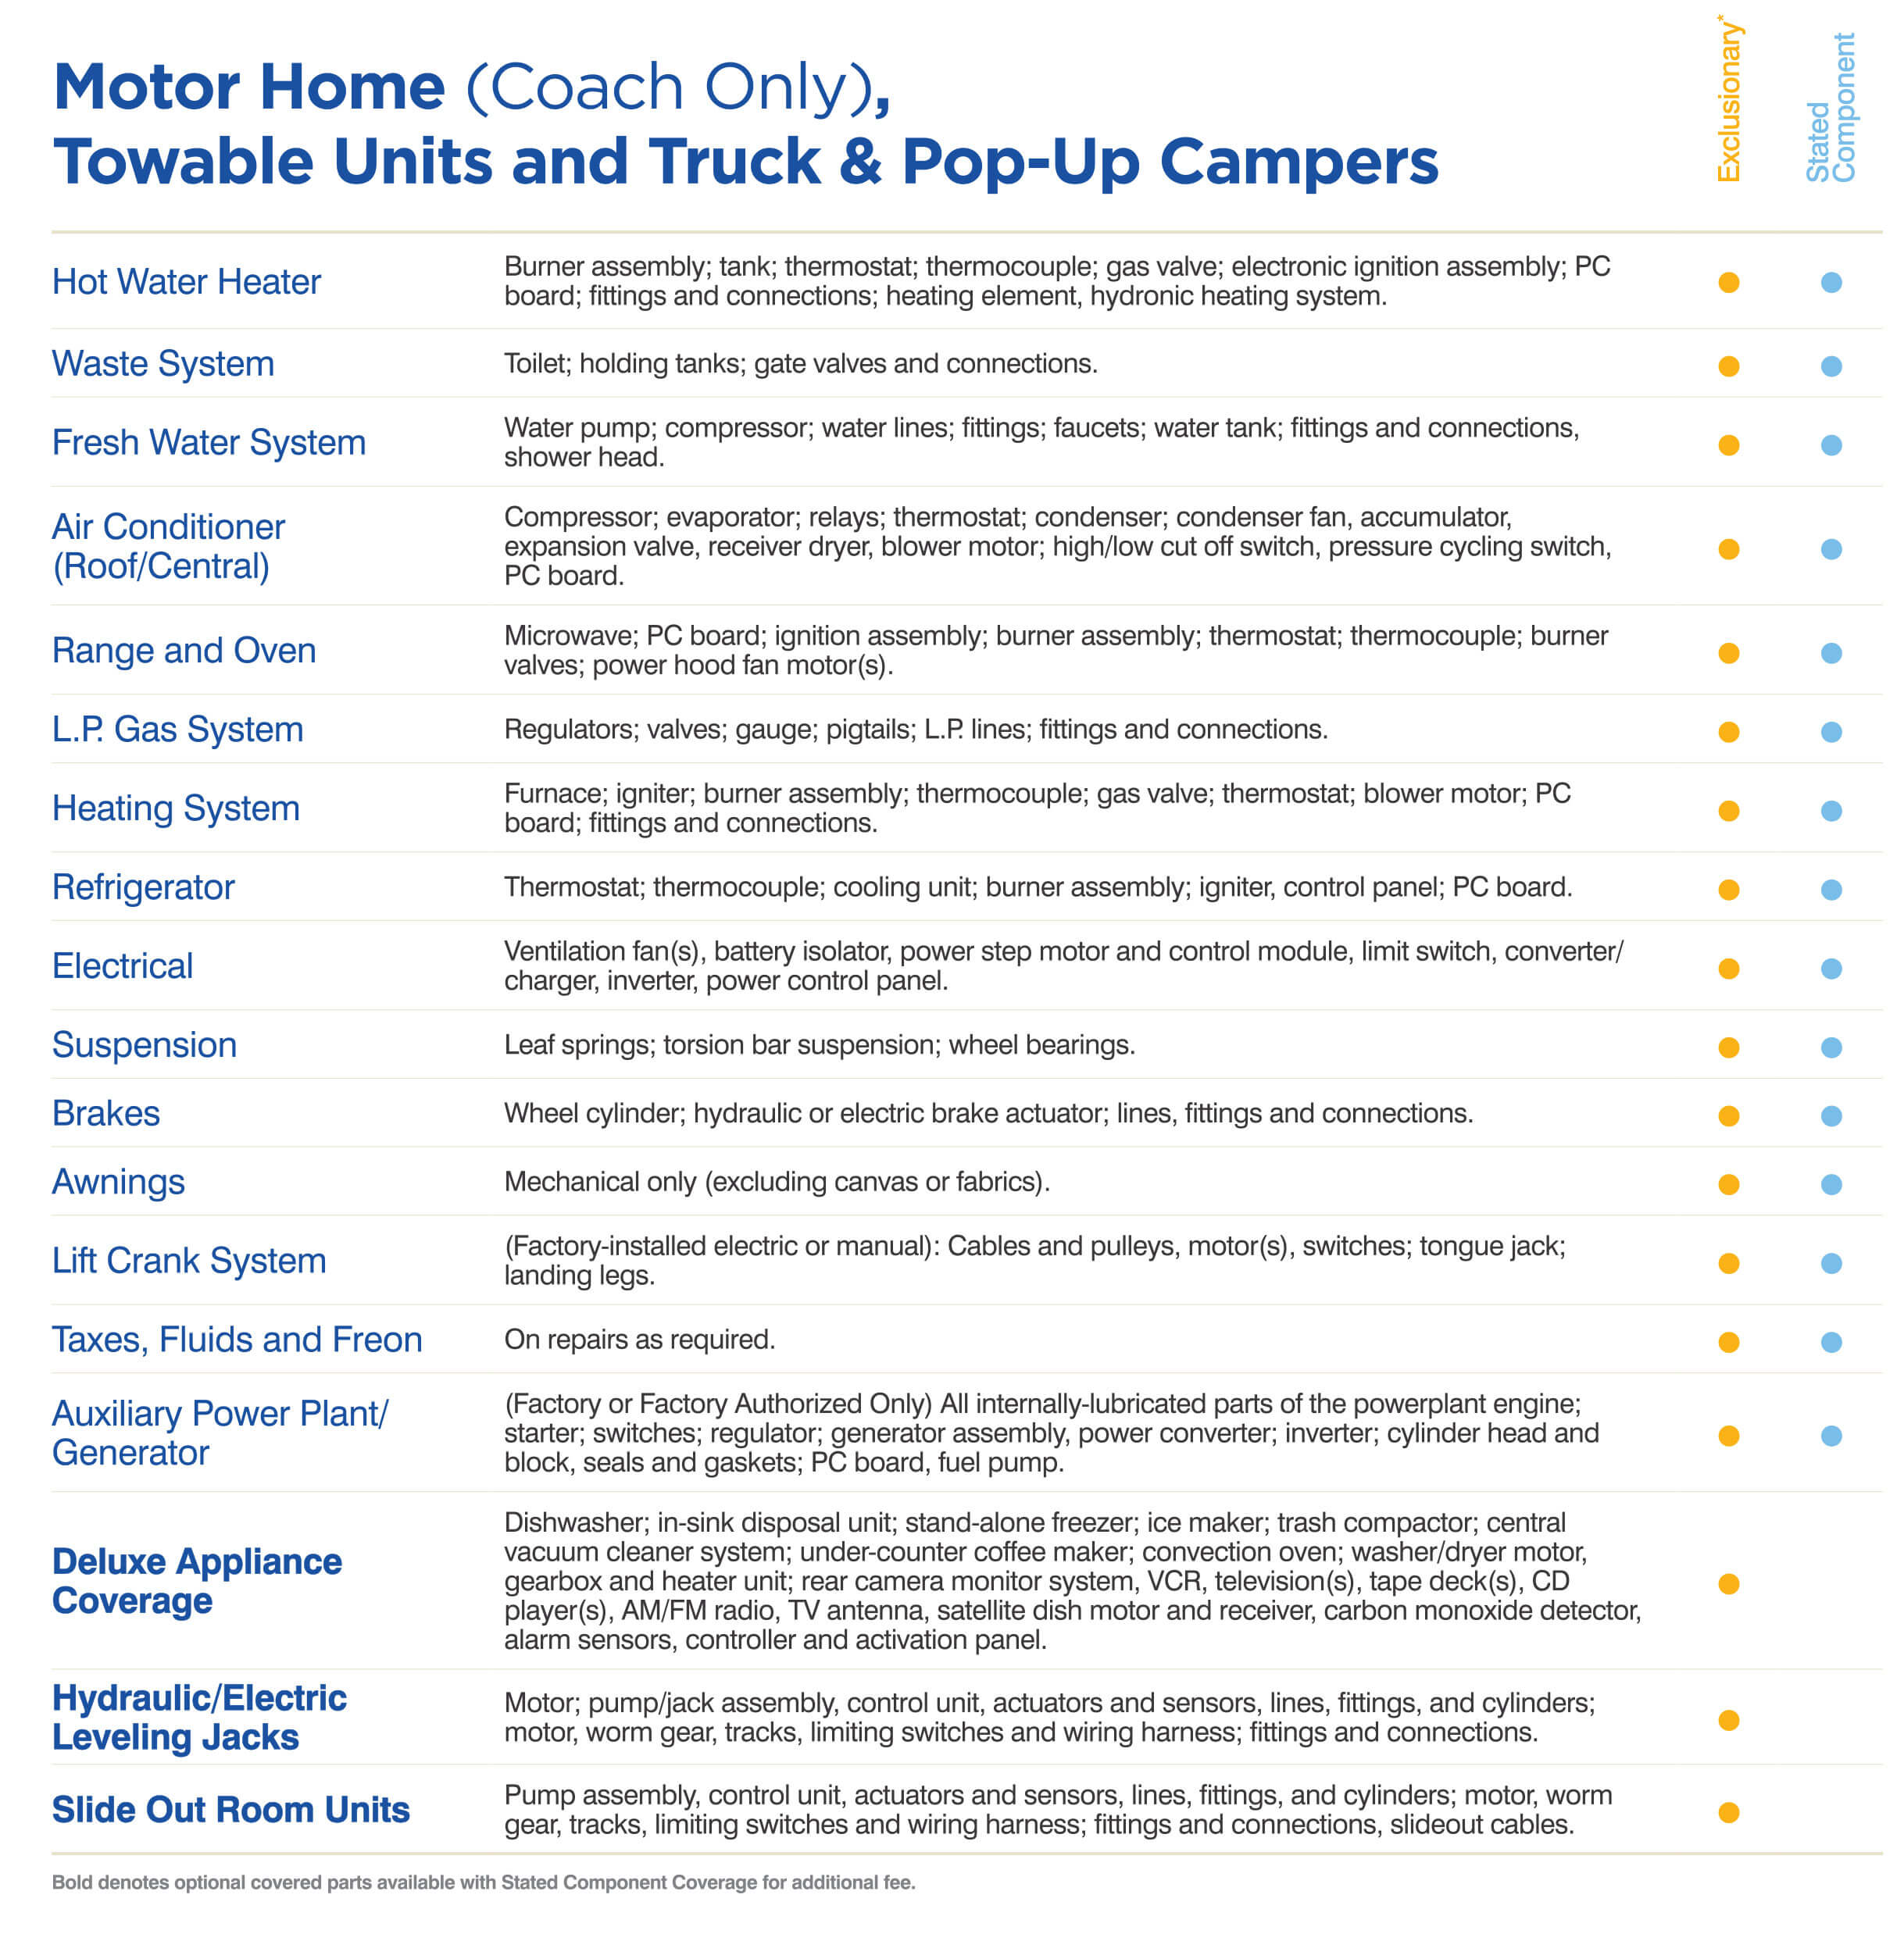 Motor Home (Coach Only), Towable Units and Truck & Pop-Up Campers